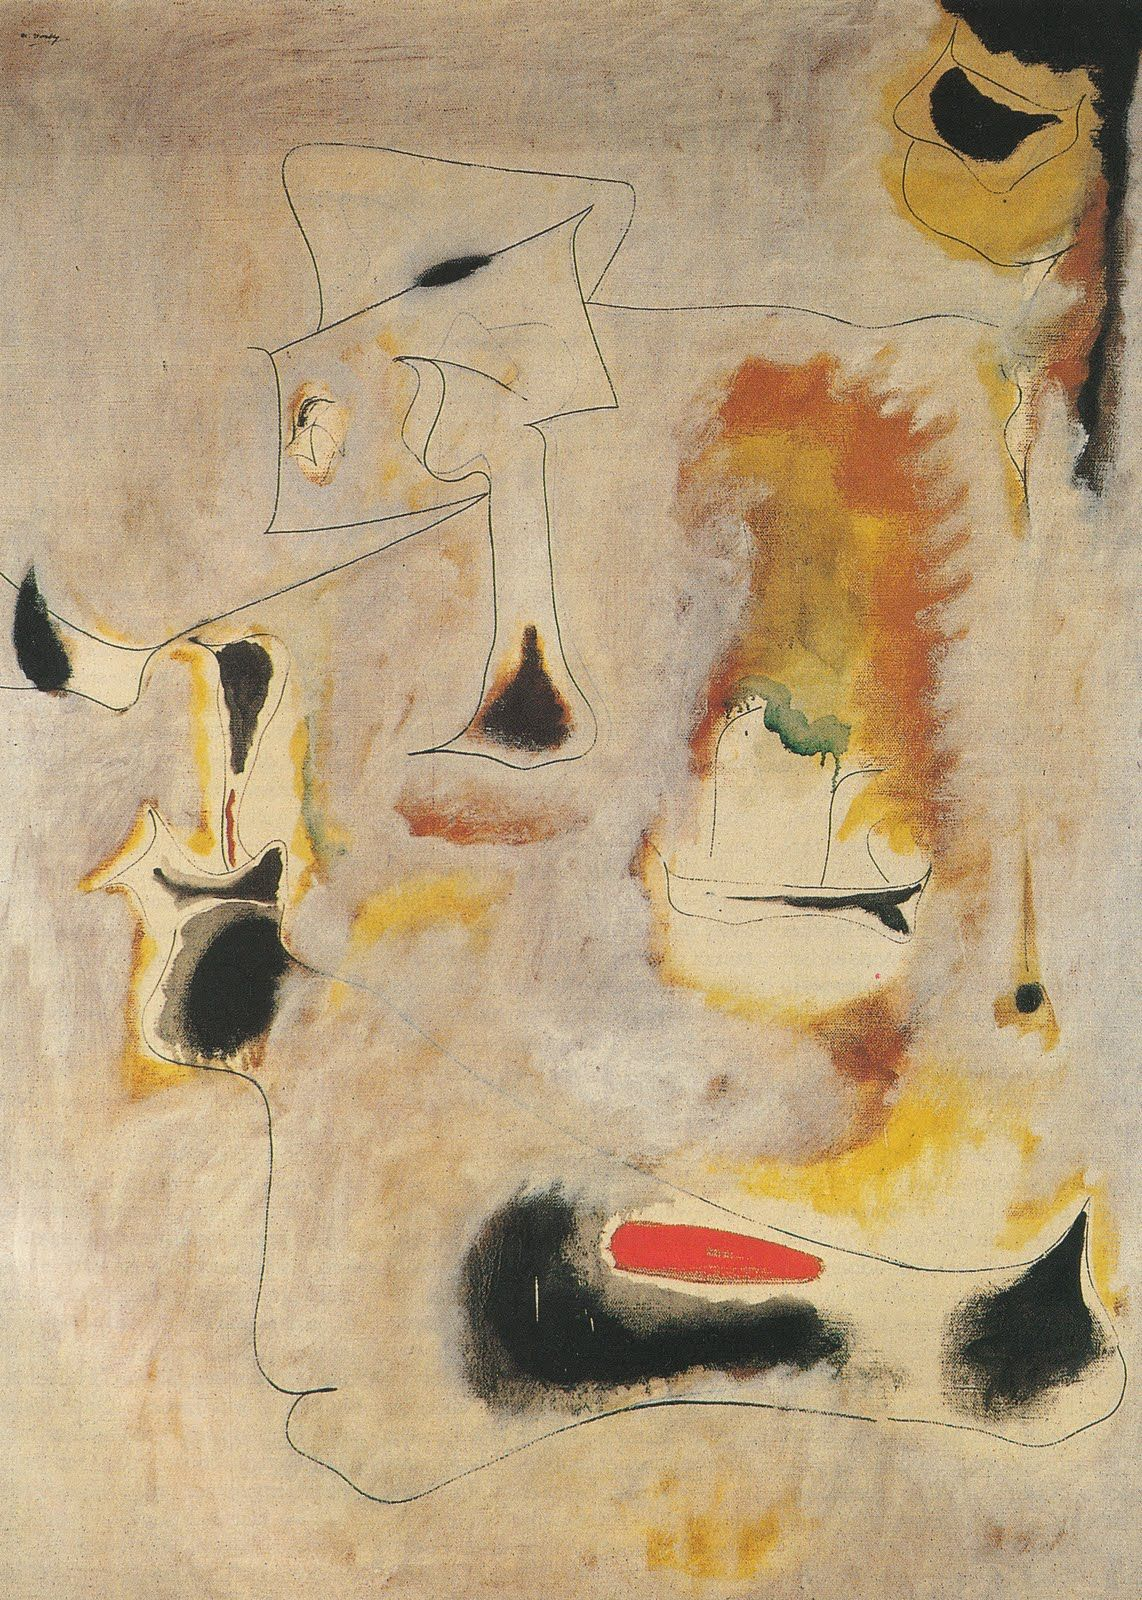 a life history of arshile gorky the eastern turkey painter Arshile gorky: arshile gorky, american painter who was the direct link between european surrealist painters and the american abstract expressionist movement gorky's early life was disrupted when his father abandoned turkey, his wife, and his family in order to avoid service in the turkish army.